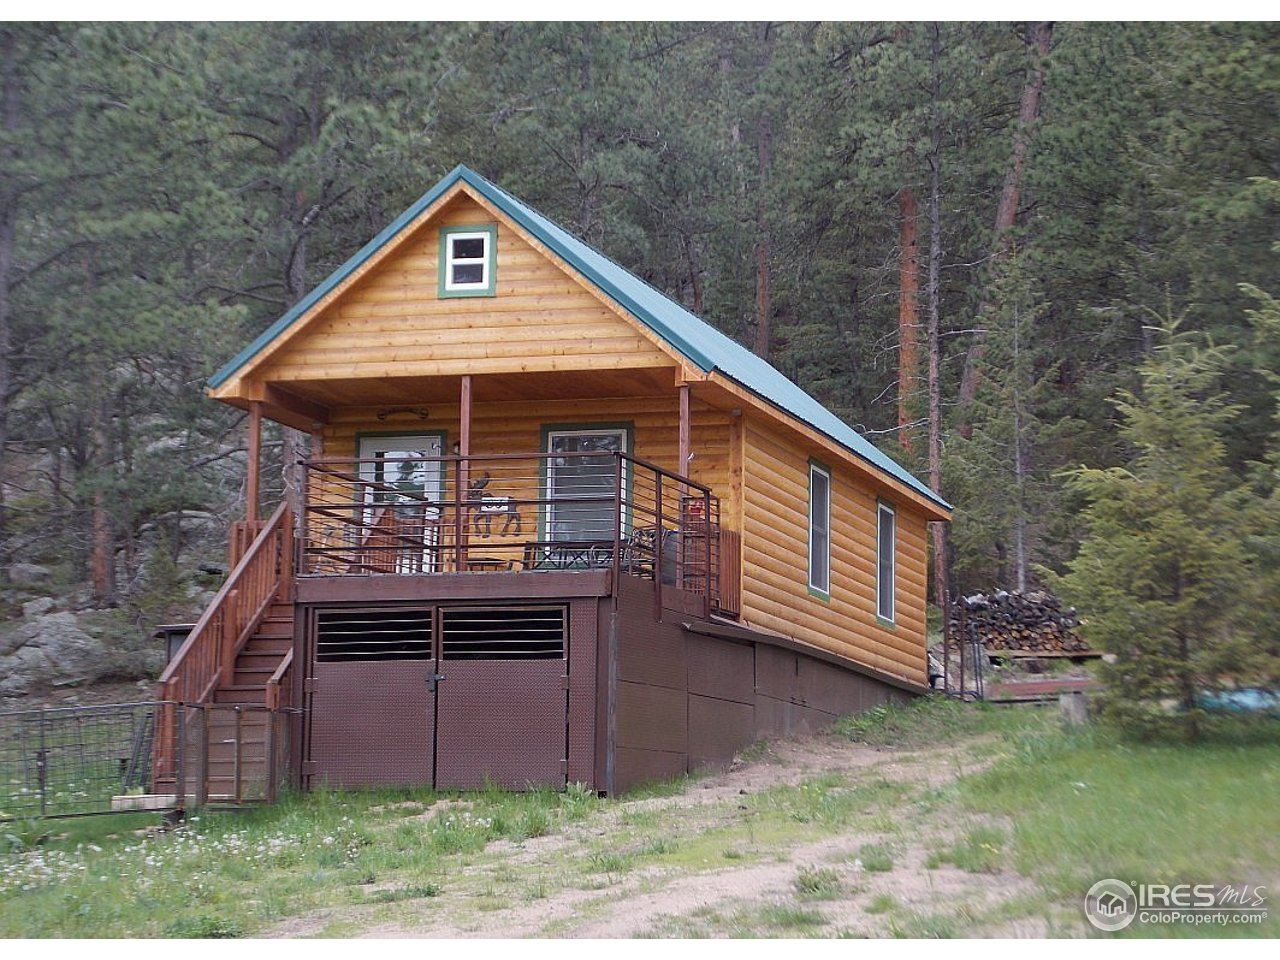 83 Cedar Dr, Lyons, CO 80540